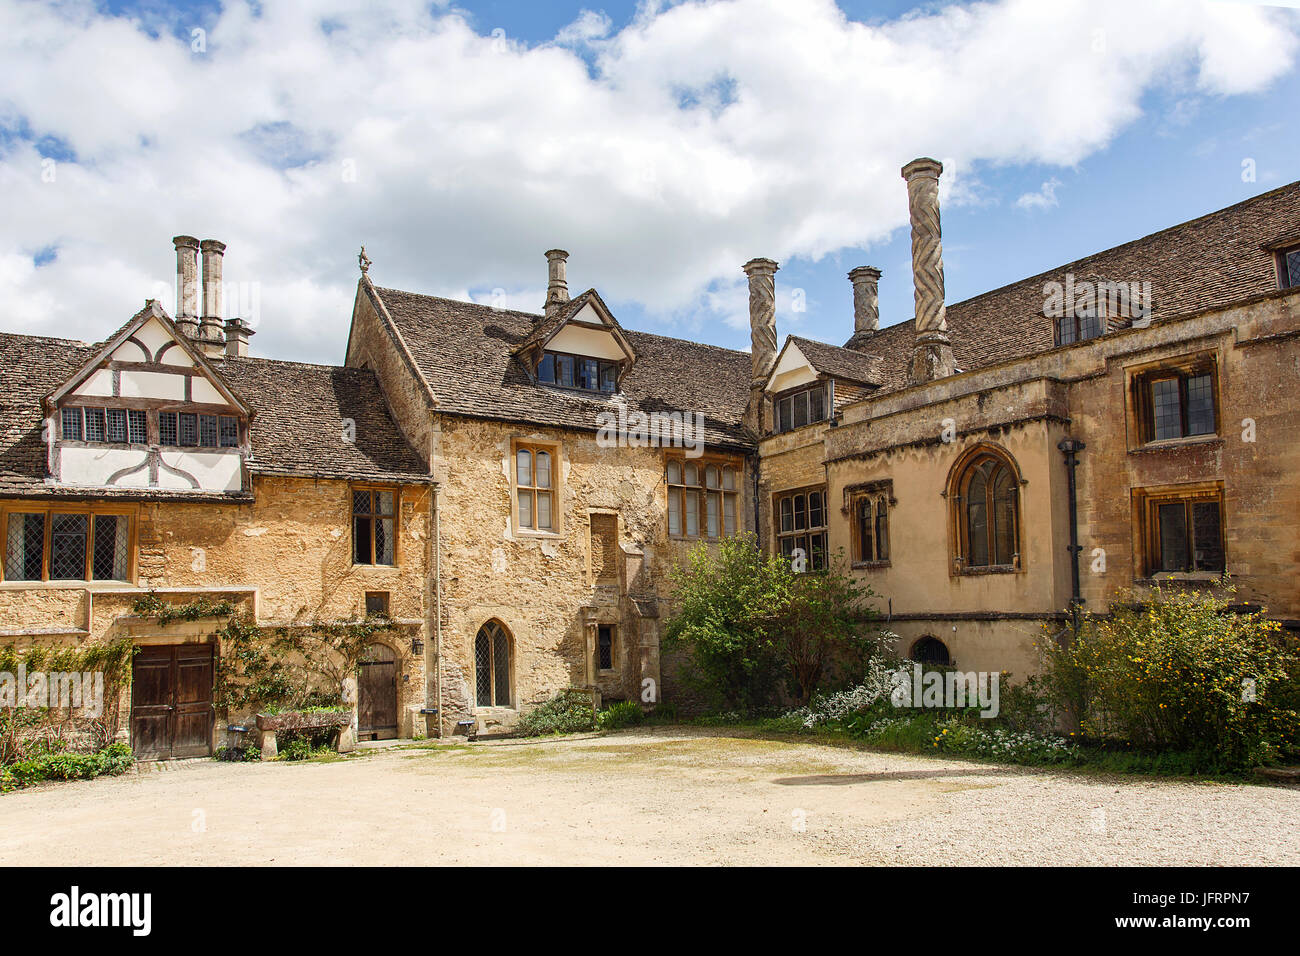 Lacock Abbey - Stock Image